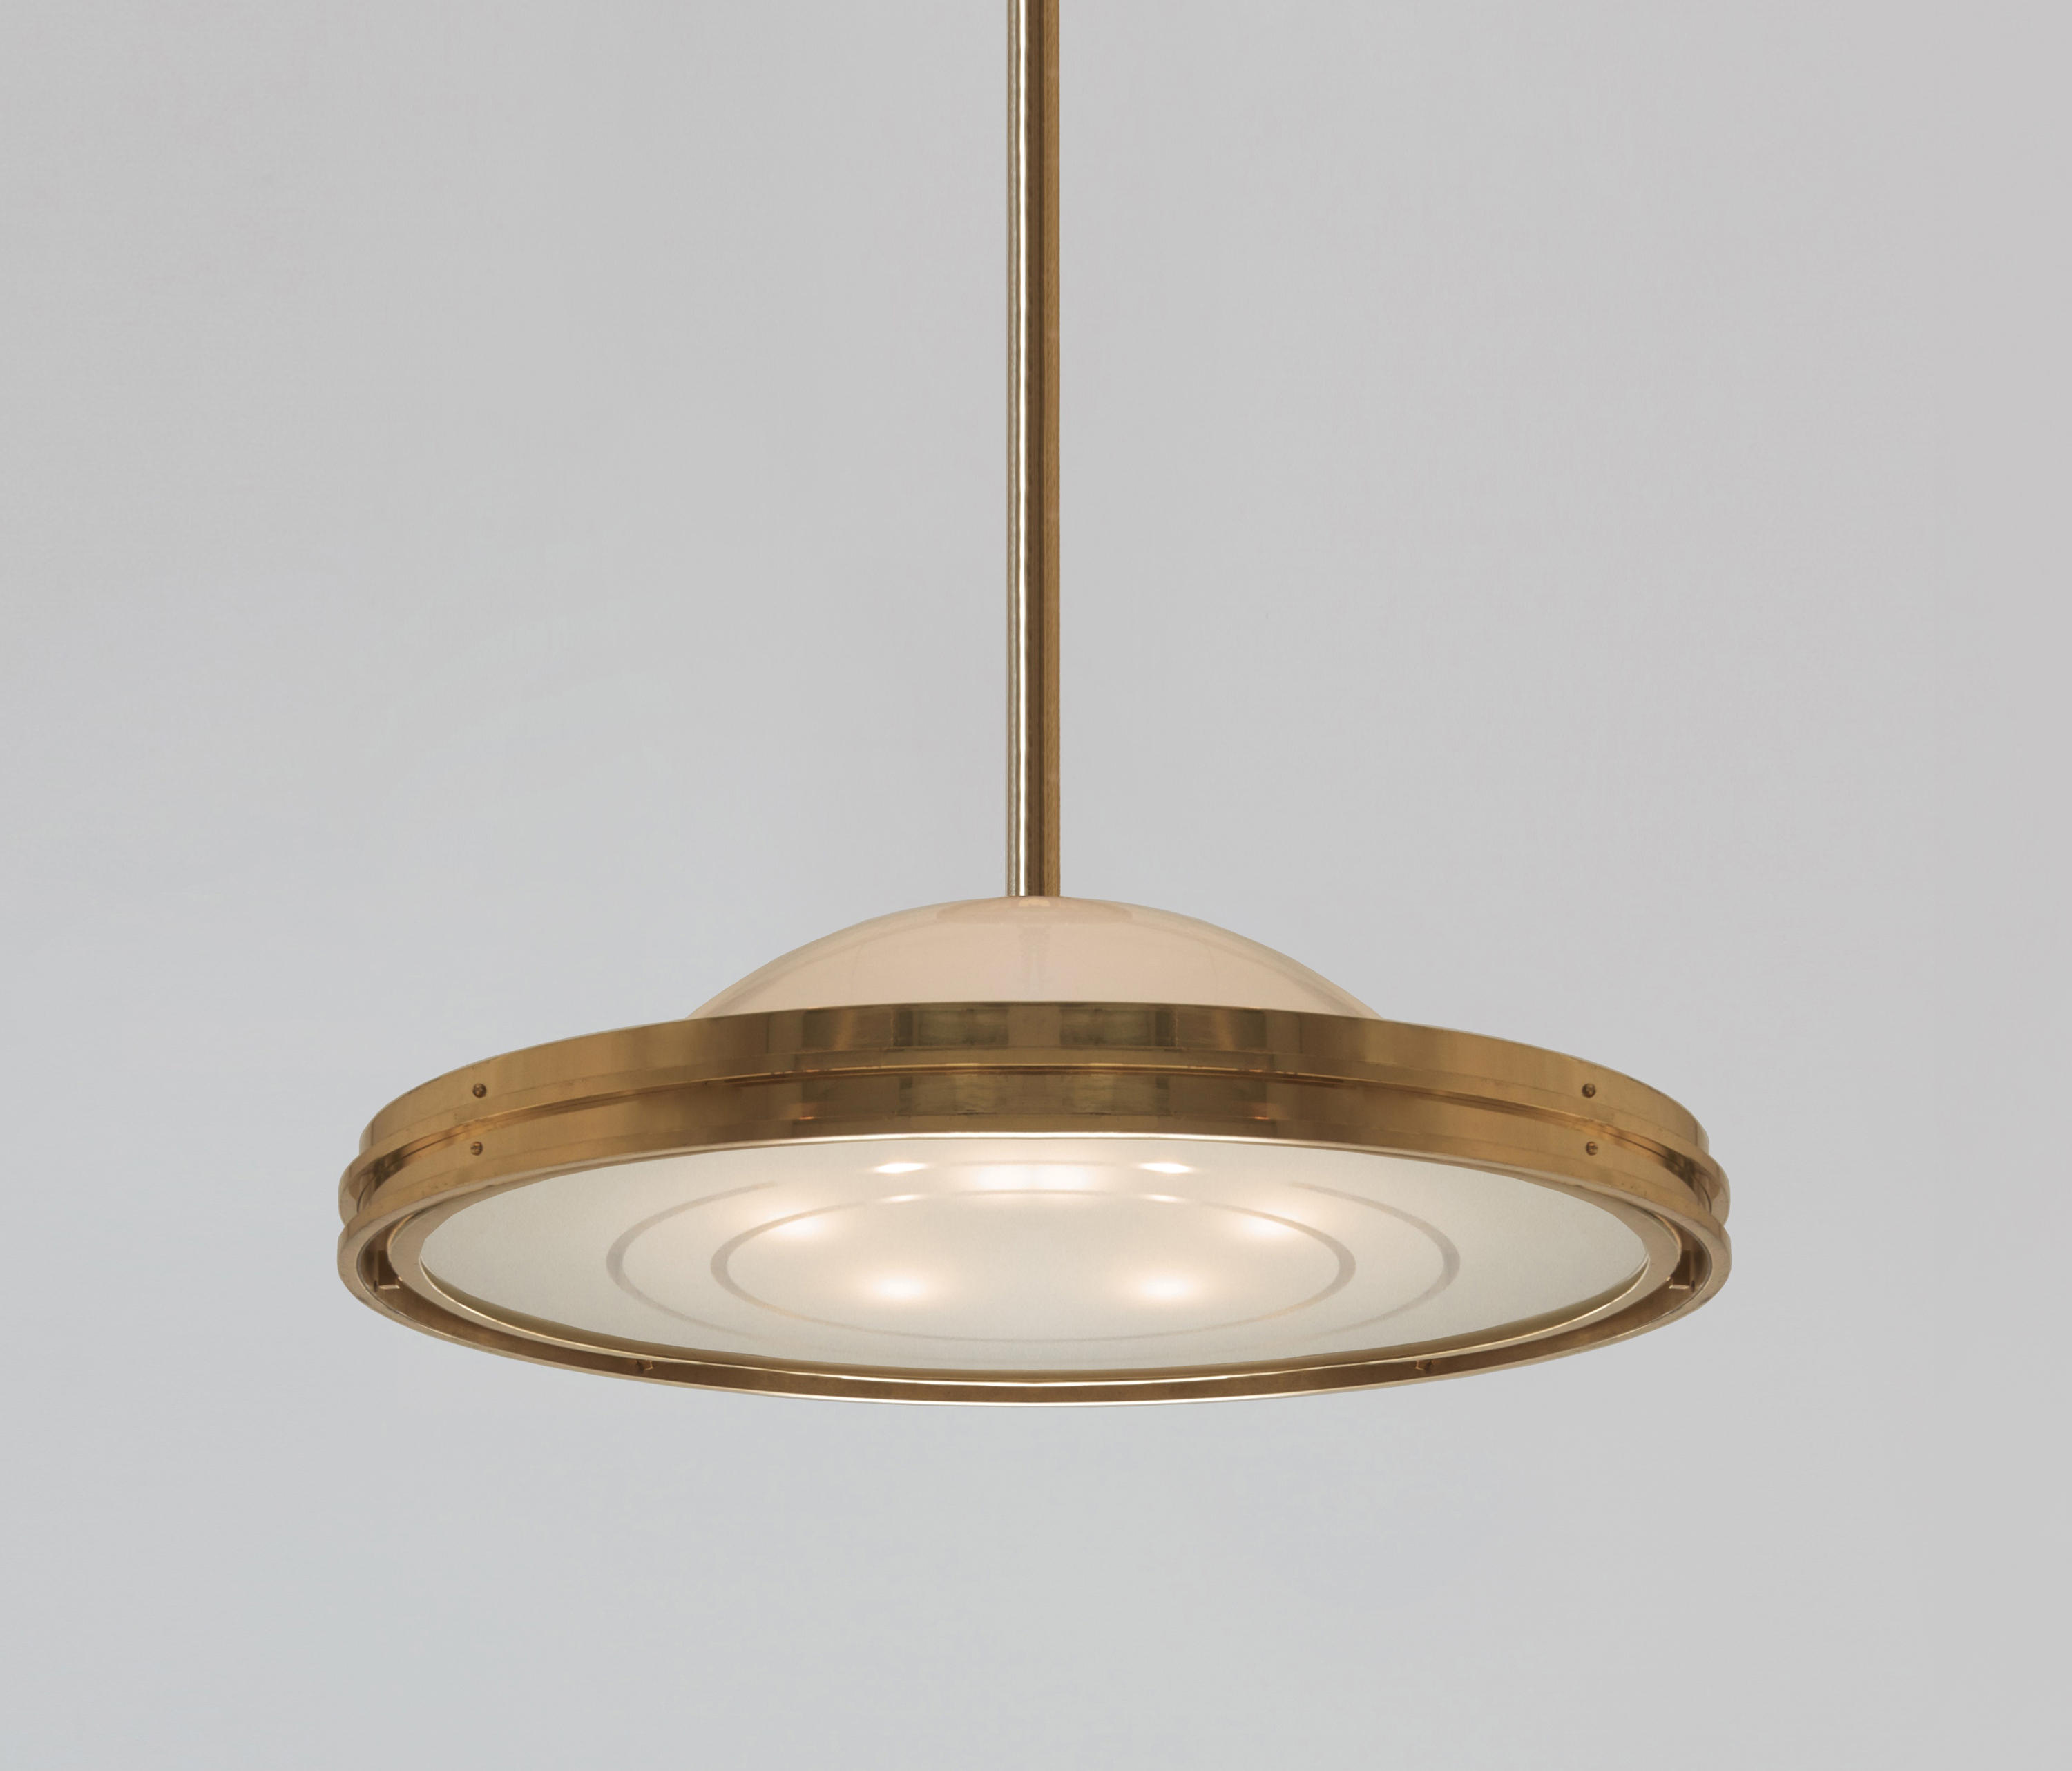 Pendant Lamp Berlin In The Style Of Bauhaus Modernism By Zeitlos